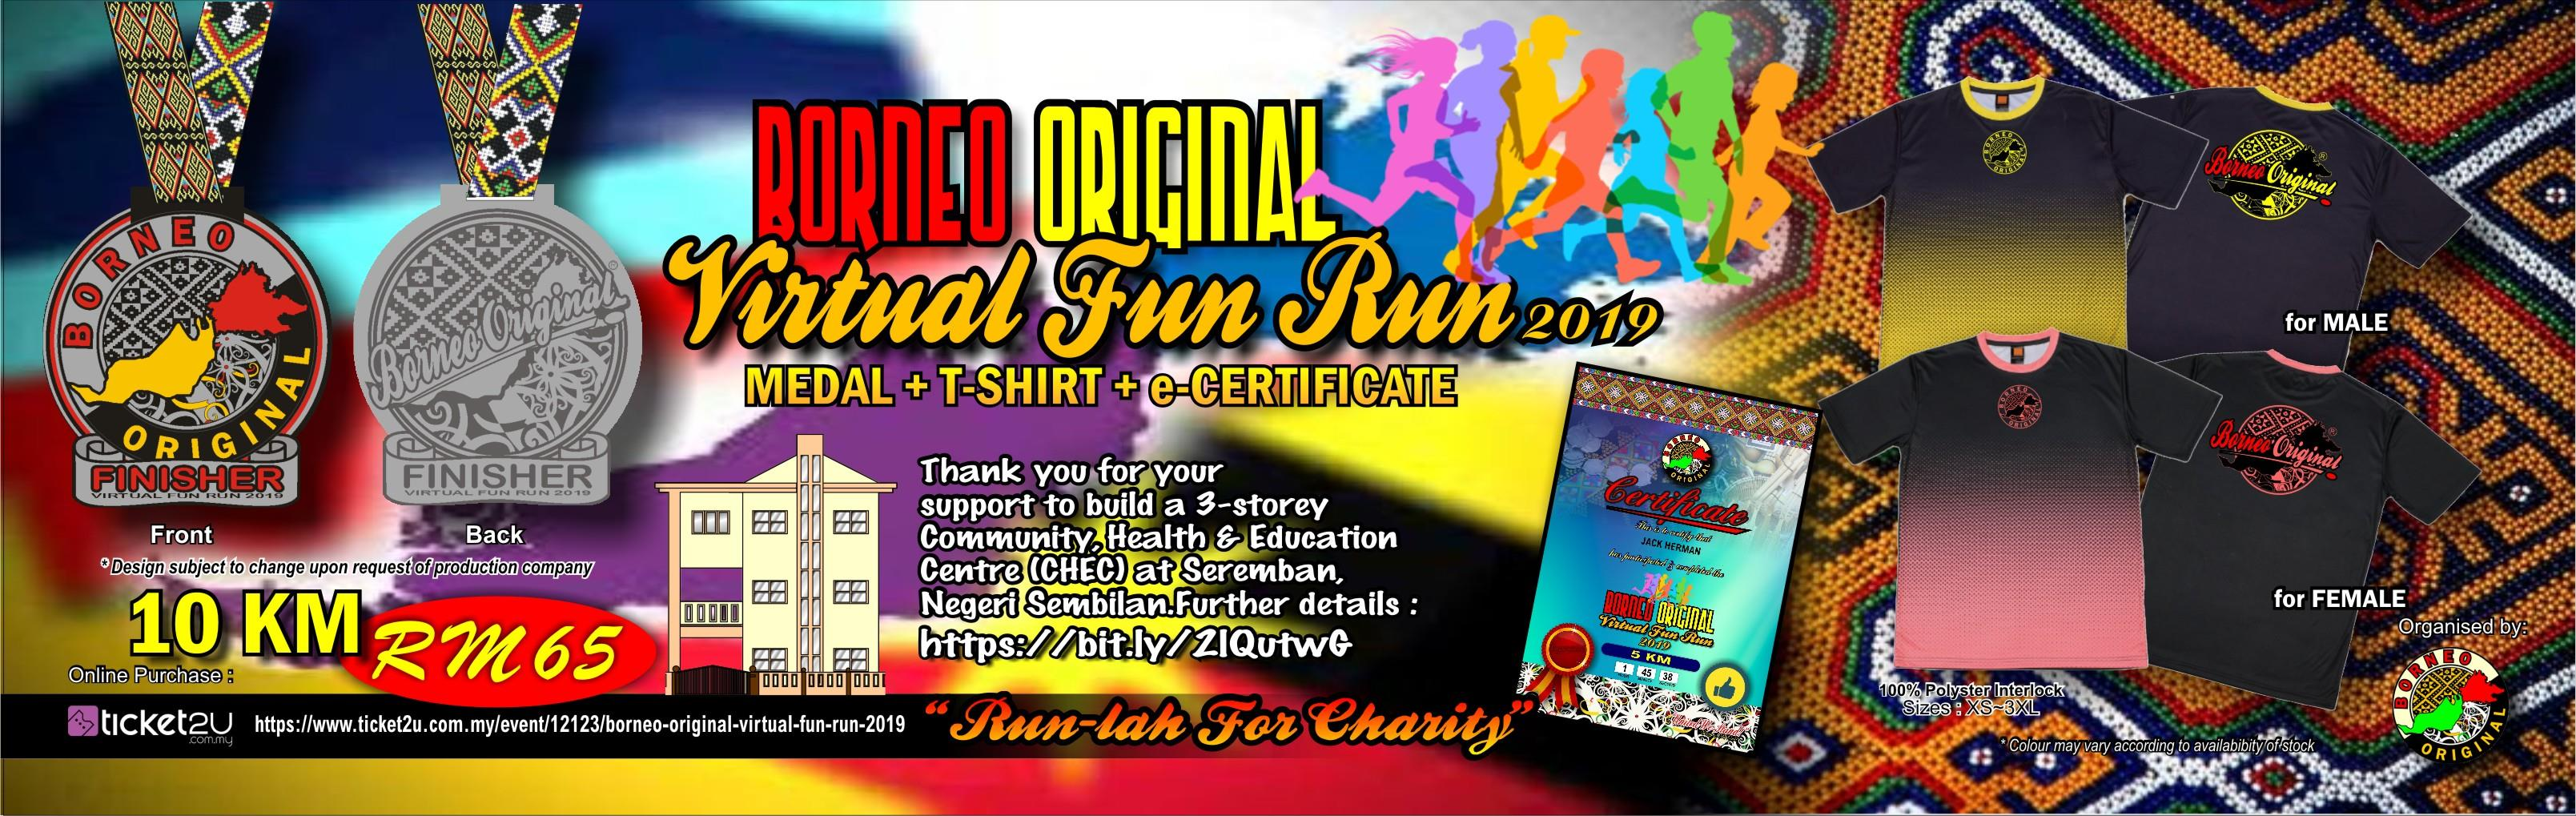 Logo of Borneo Original Virtual Fun Run 2019